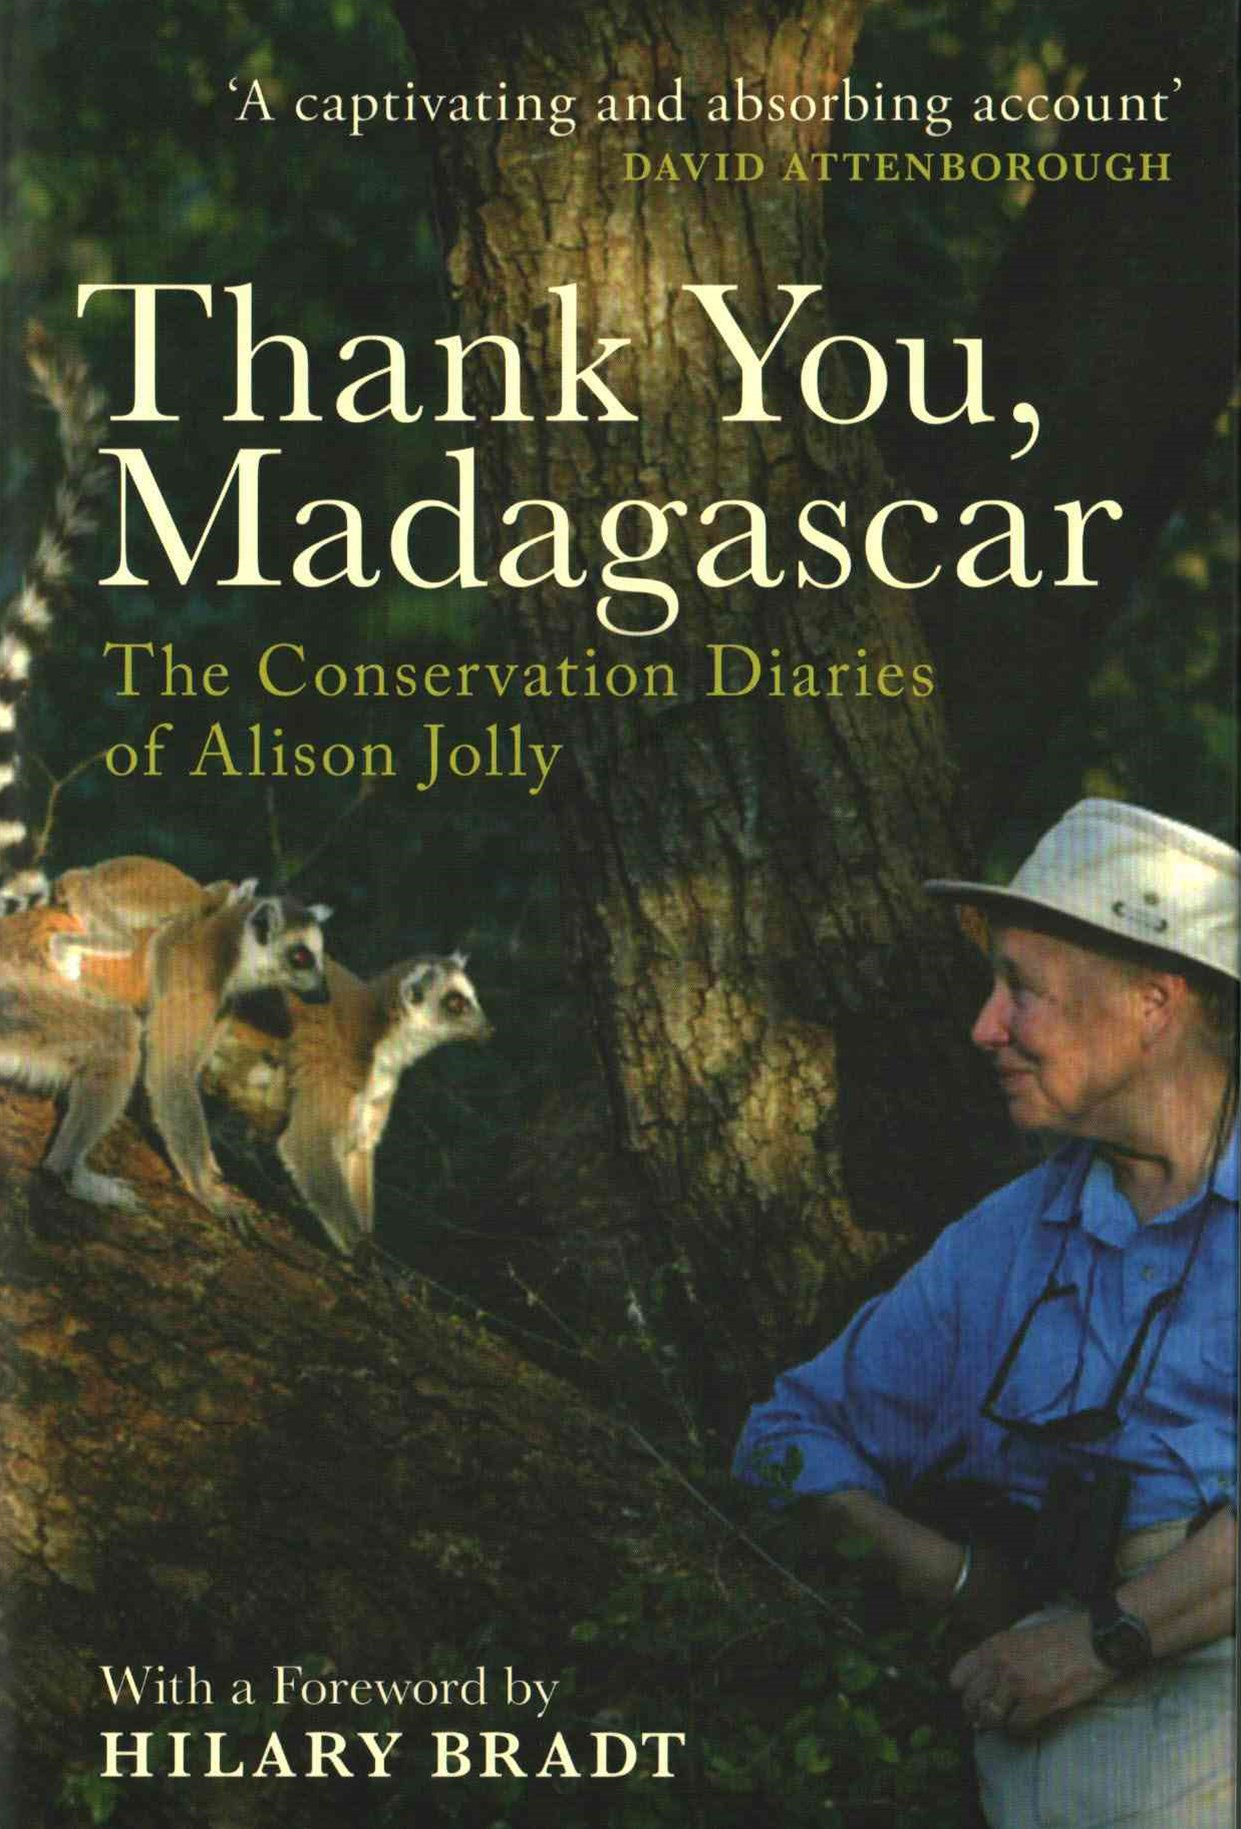 Thank You, Madagascar